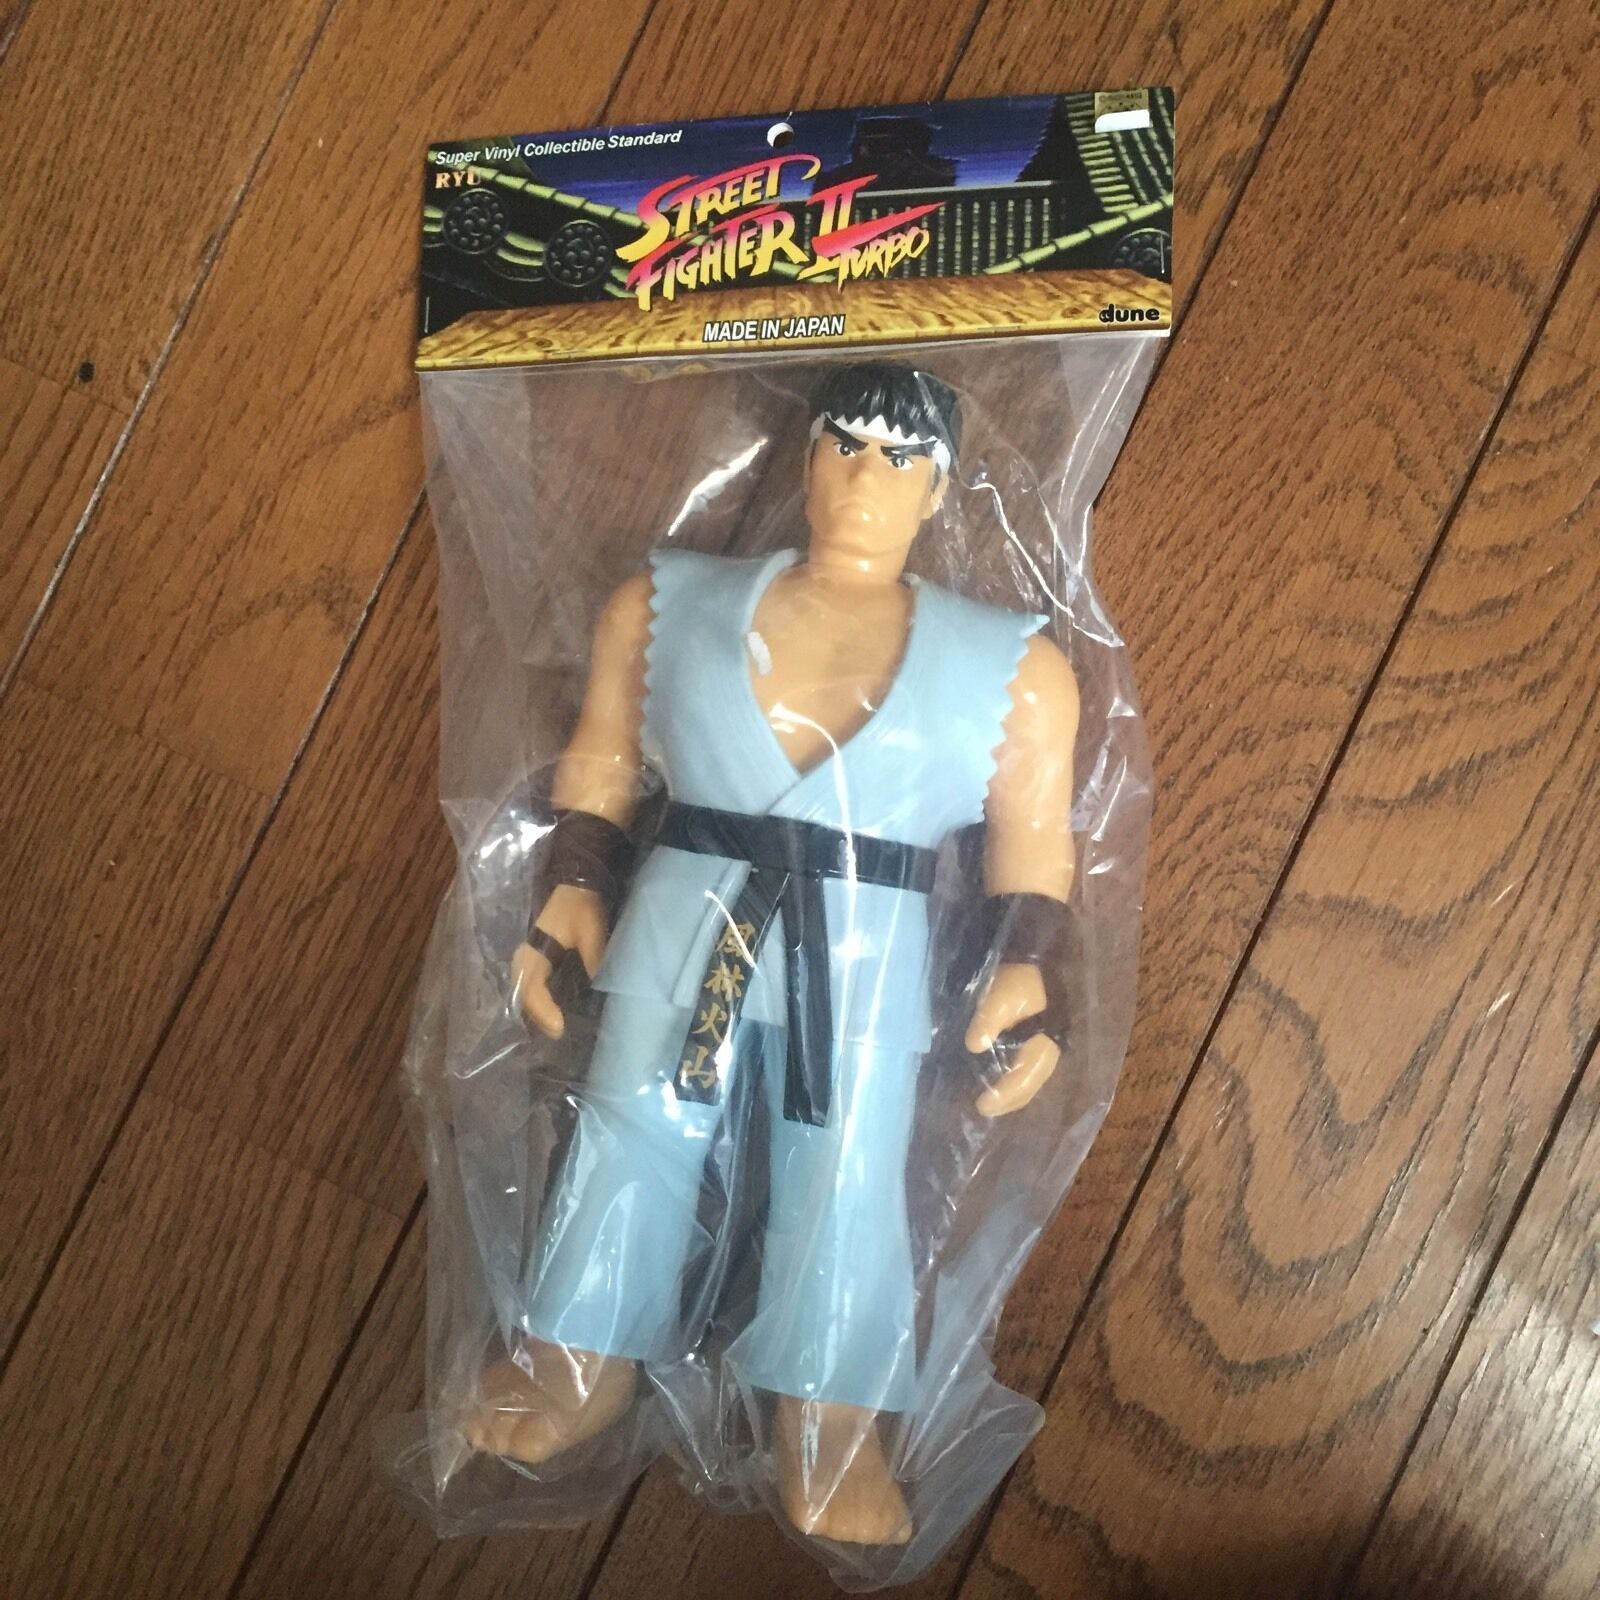 Street Fighter Action Figure   RYU   SOFT VINYL Turbo color cacom